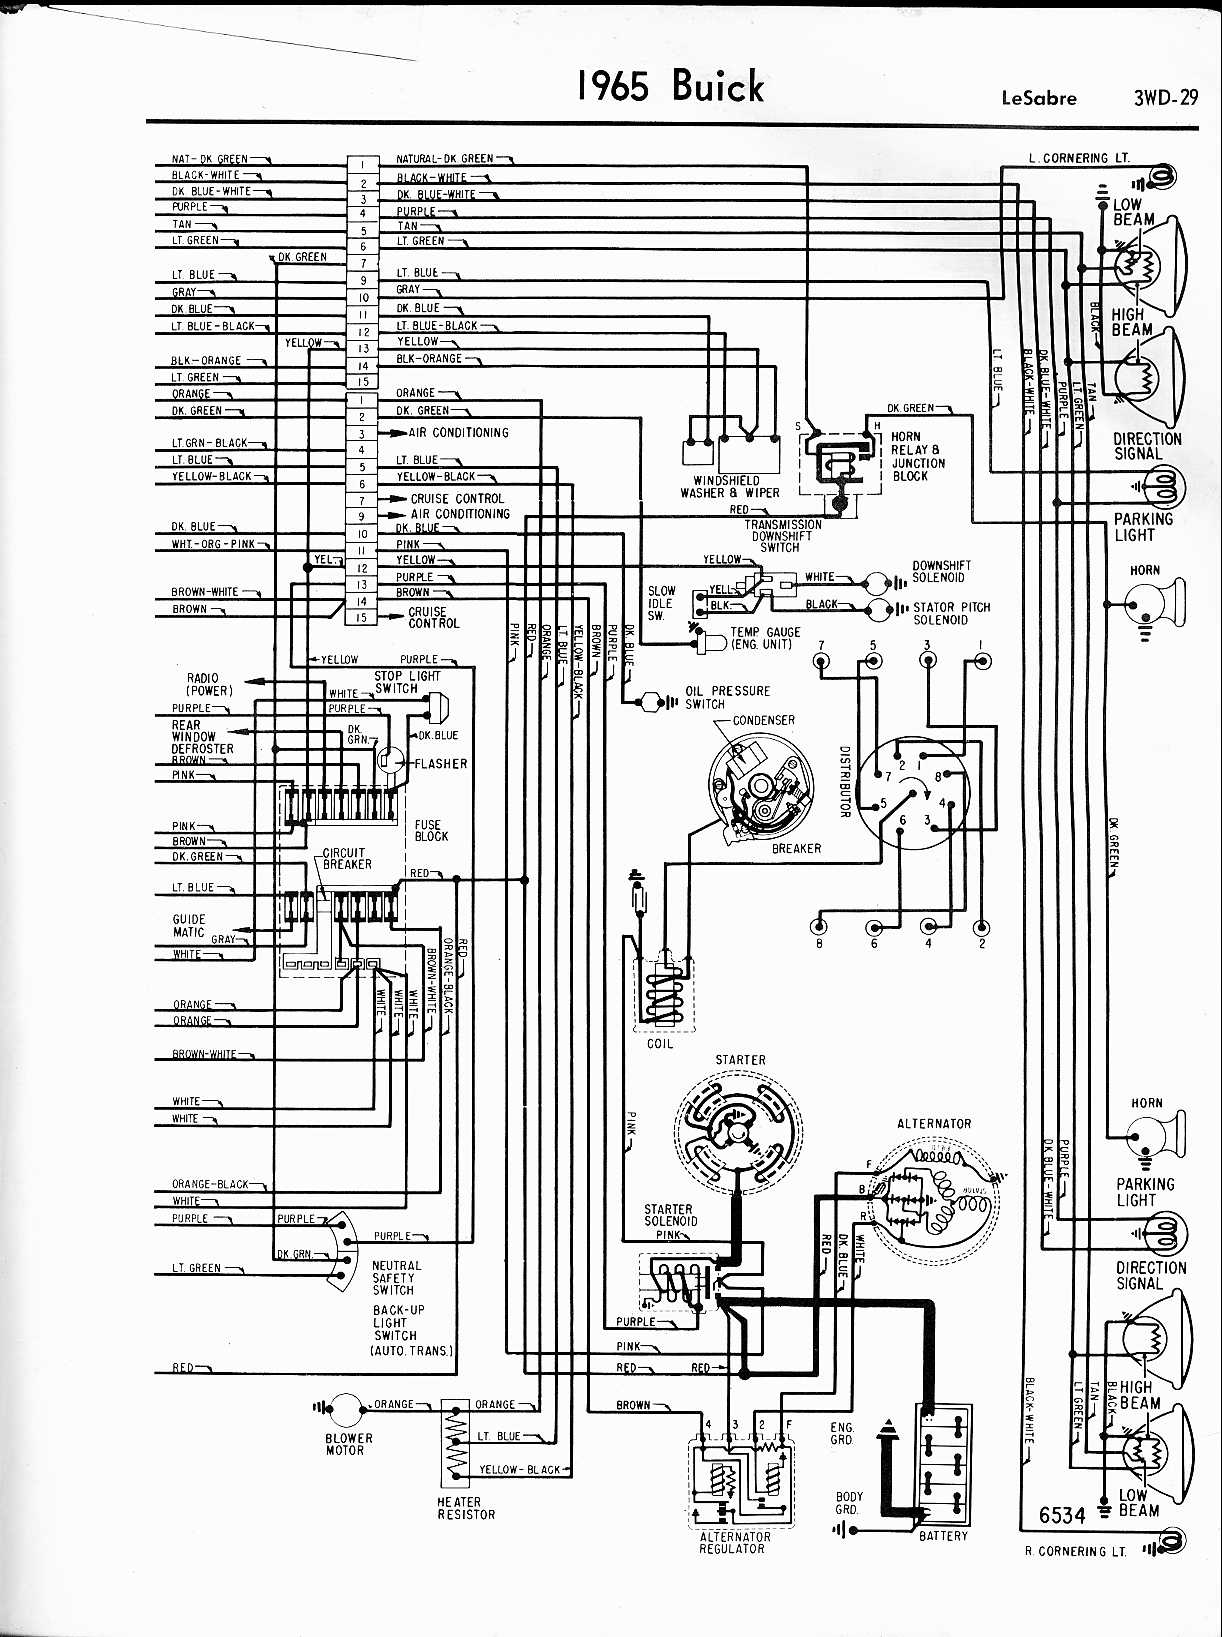 Stupendous 1972 C30 Wiring Diagram Wiring Diagram Database Wiring Cloud Overrenstrafr09Org